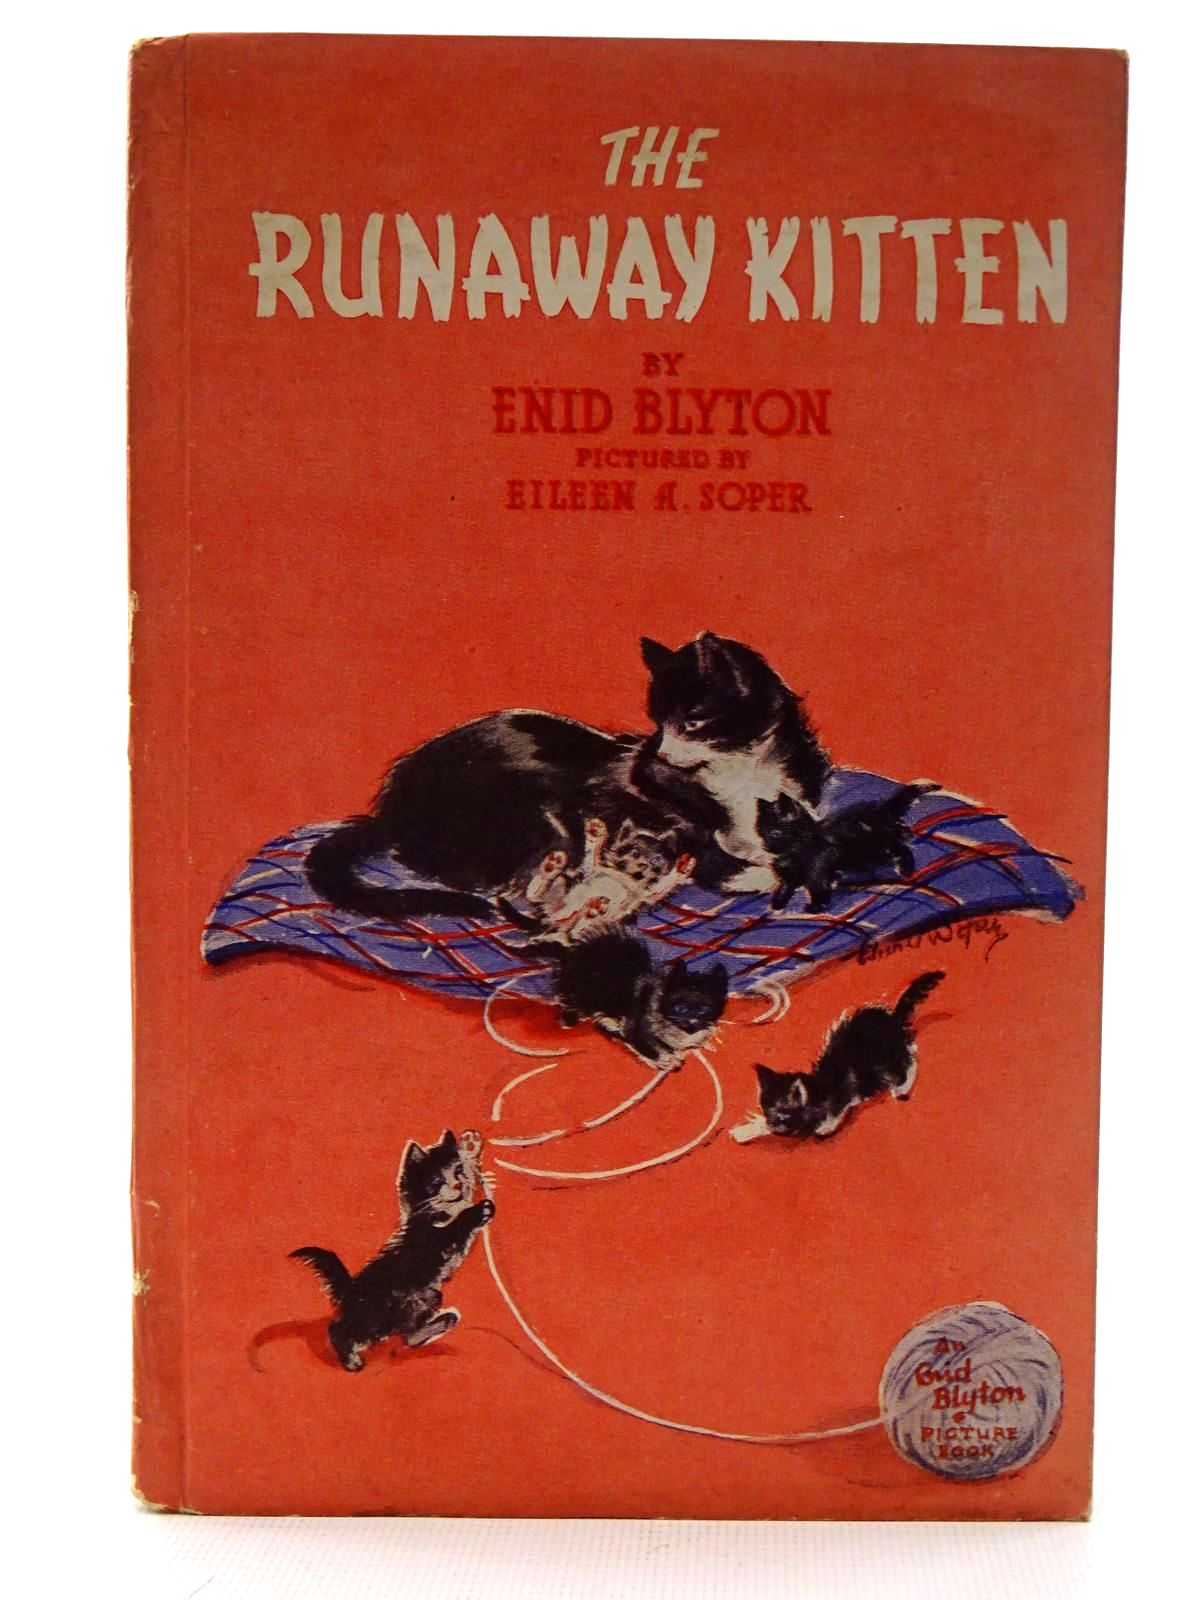 Photo of THE RUNAWAY KITTEN written by Blyton, Enid illustrated by Soper, Eileen published by The Brockhampton Press Ltd. (STOCK CODE: 2126062)  for sale by Stella & Rose's Books